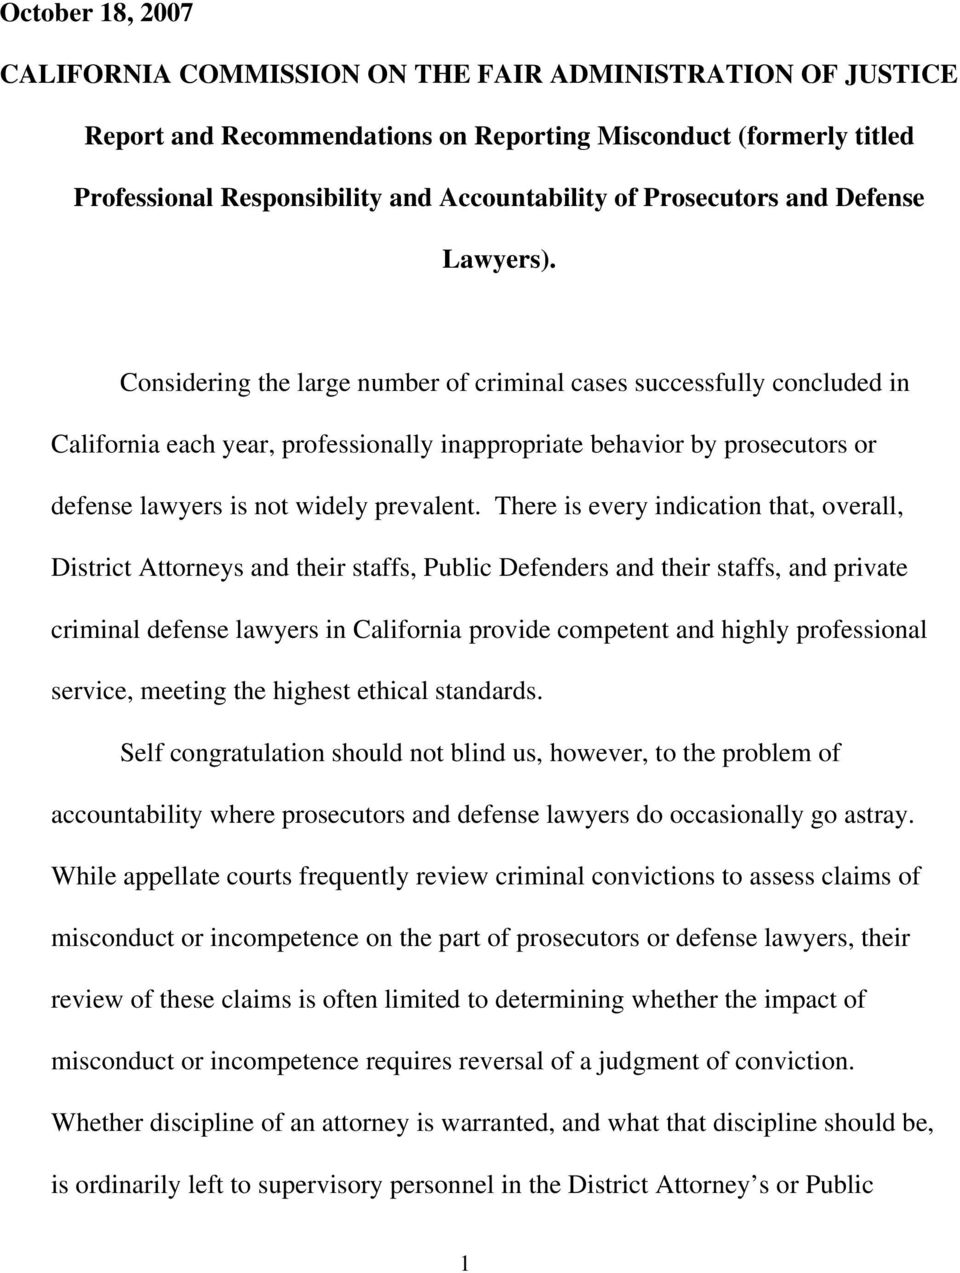 Considering the large number of criminal cases successfully concluded in California each year, professionally inappropriate behavior by prosecutors or defense lawyers is not widely prevalent.